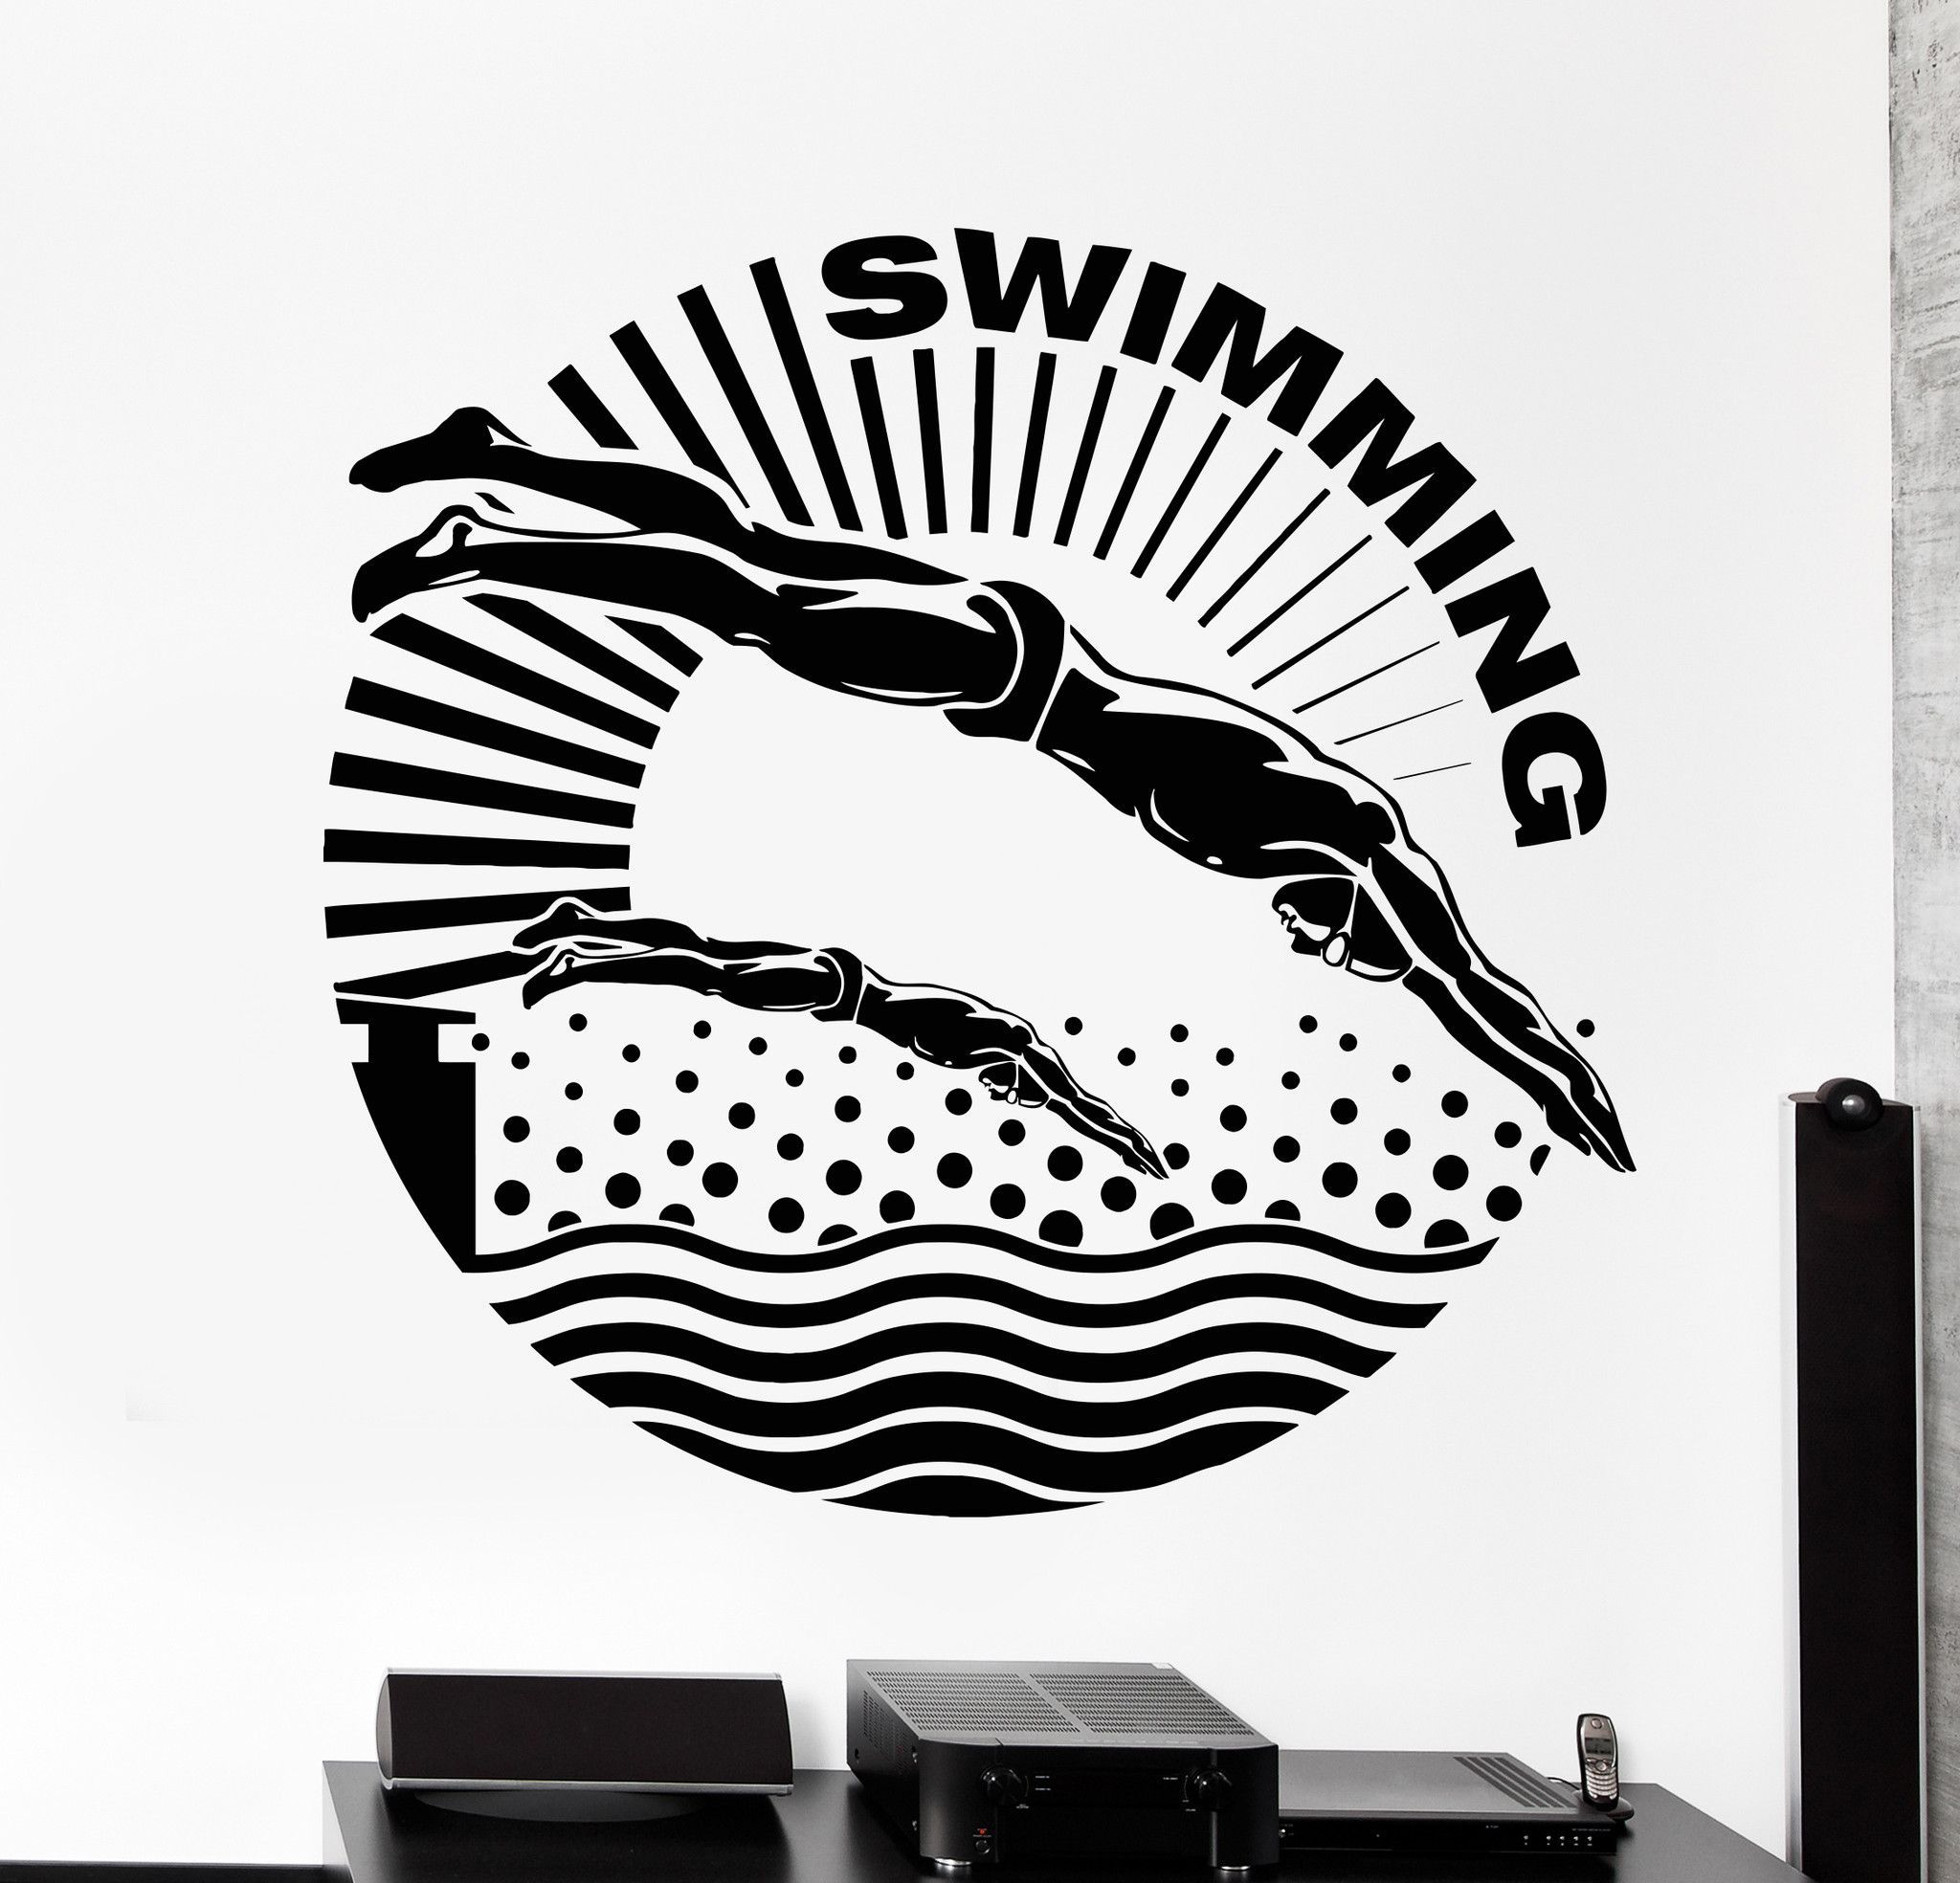 Vinyl Wall Decal Swimmer Water Sport Swimming Pool Stickers Unique